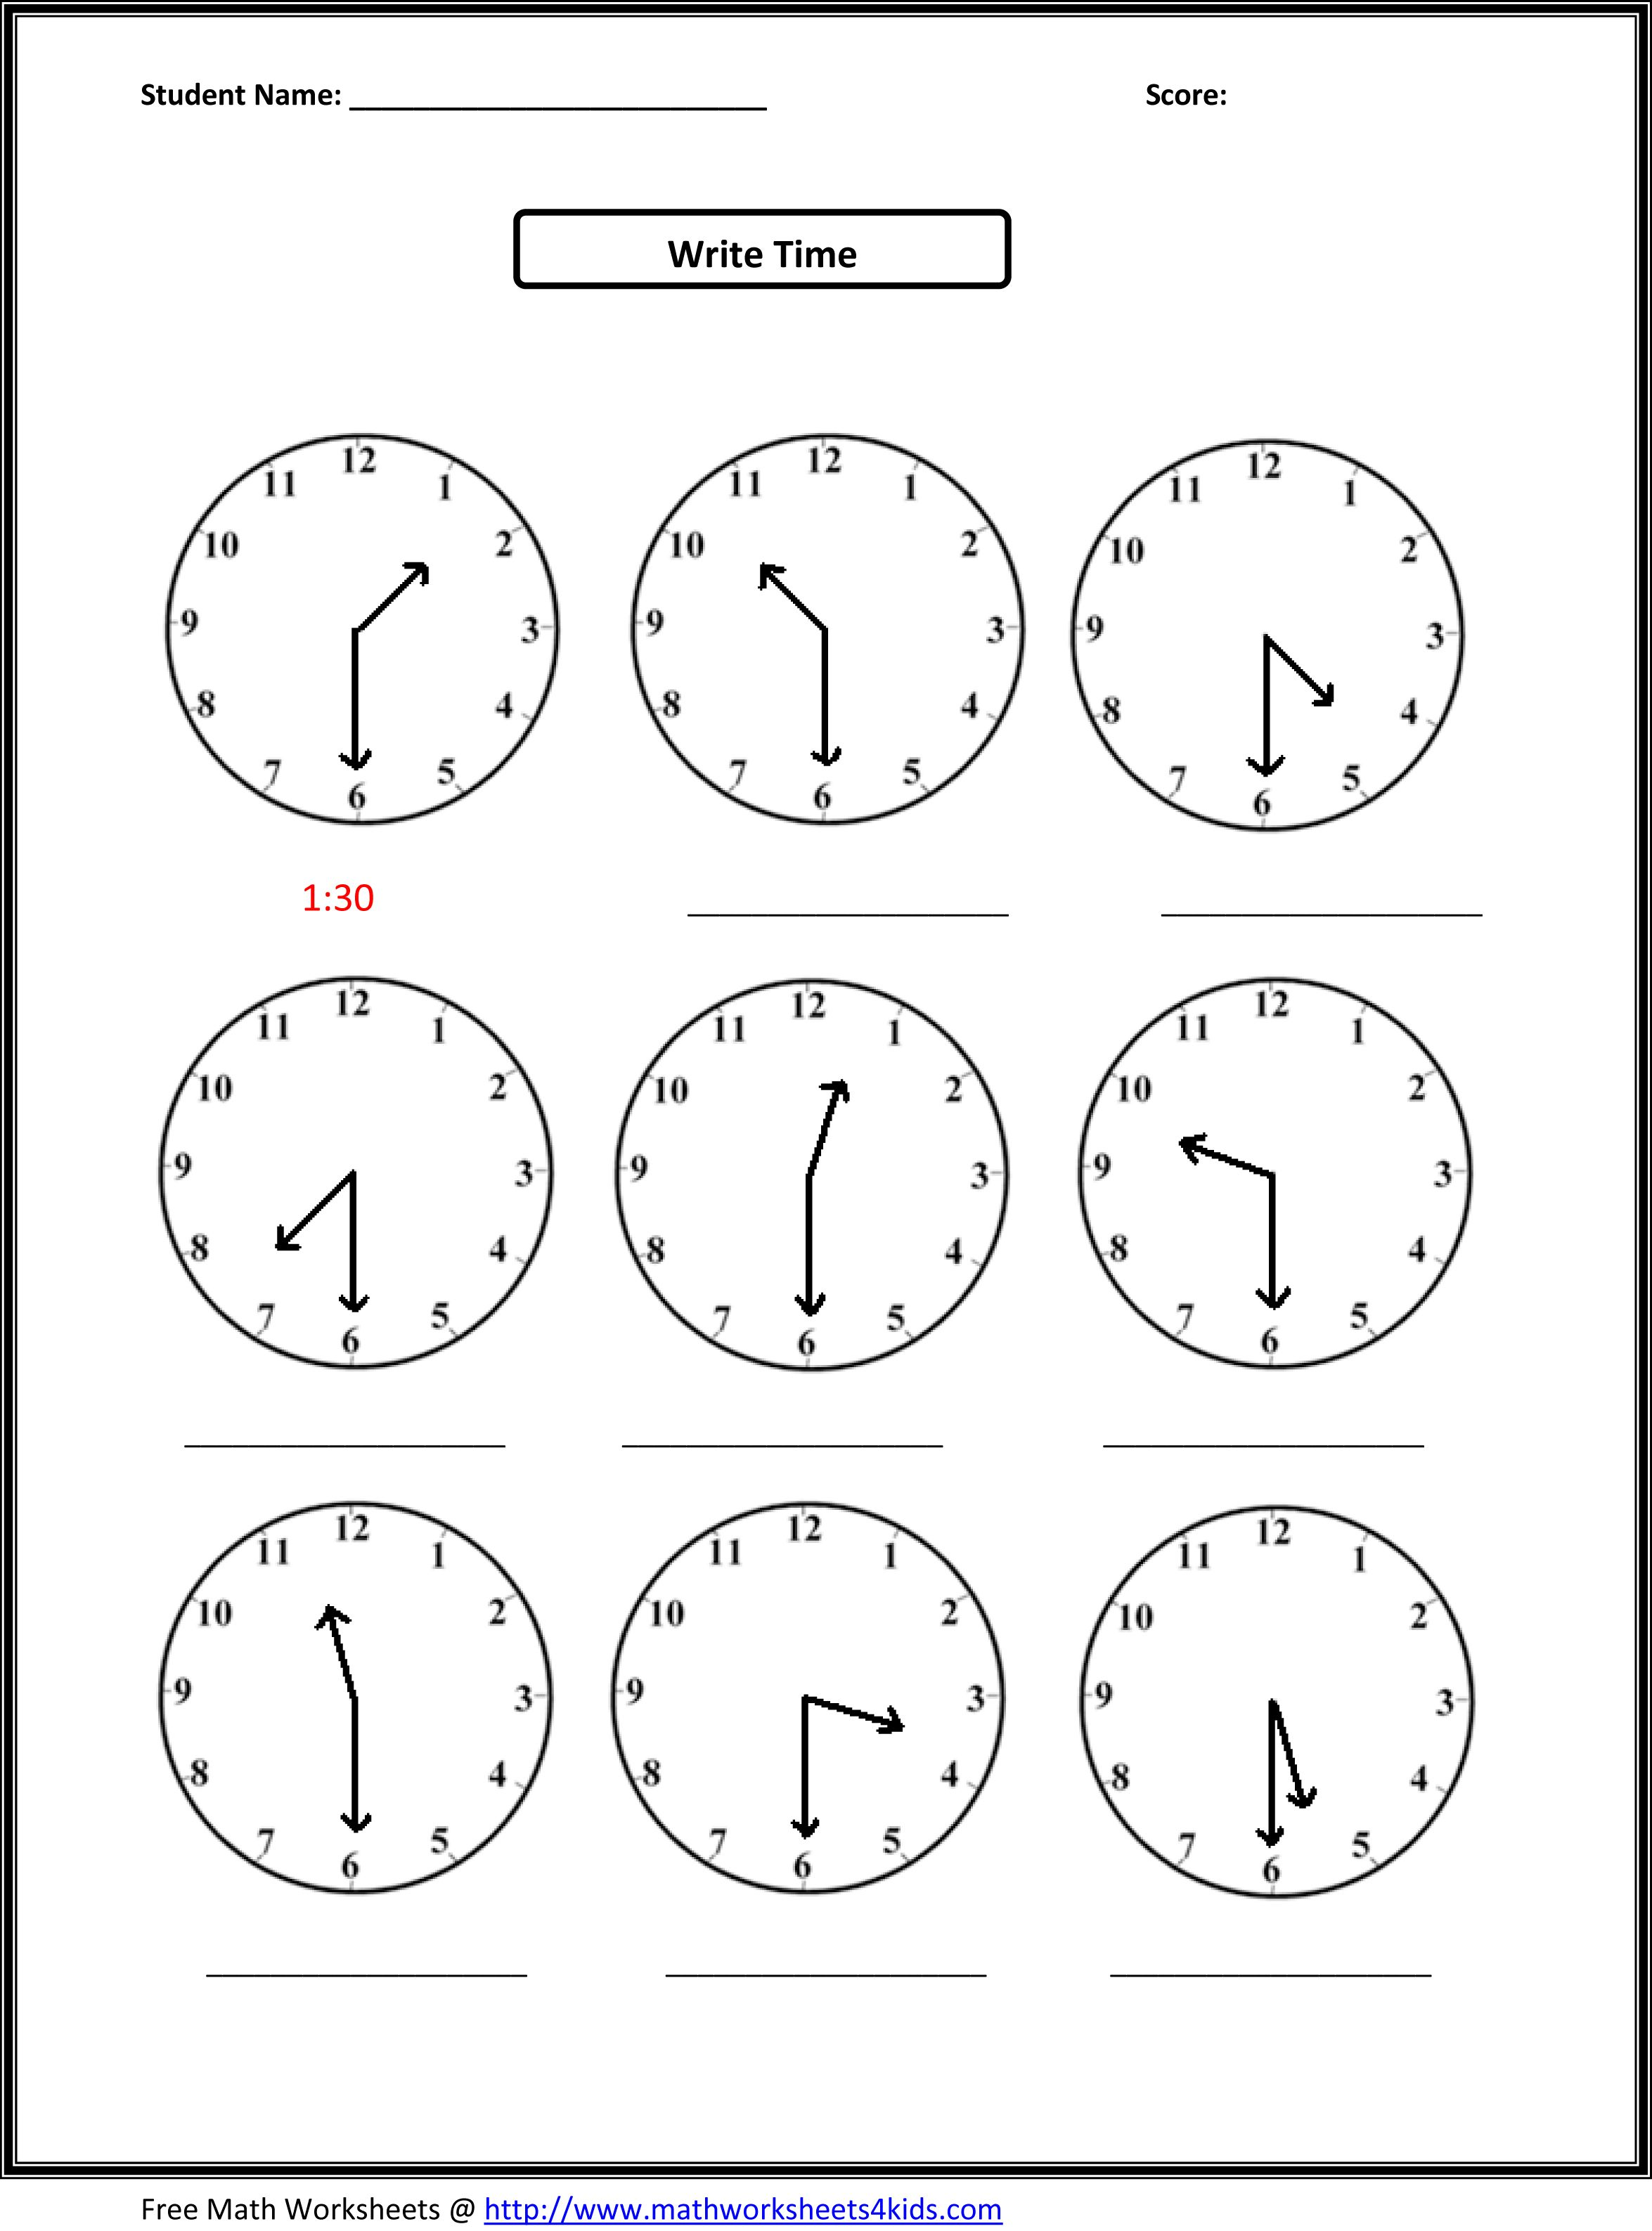 Proatmealus  Nice Worksheet On Time For Grade   Reocurent With Glamorous Free Printable Telling Time Worksheets Nd Grade  Reocurent With Appealing Worksheet On Reading Comprehension Also Paragraph Writing Worksheets Grade  In Addition Reading Comprehension Grade  Worksheets And Masculine And Feminine Gender Worksheets As Well As Maths Graphs Worksheets Additionally Phonics Sounds Worksheets From Reocurentcom With Proatmealus  Glamorous Worksheet On Time For Grade   Reocurent With Appealing Free Printable Telling Time Worksheets Nd Grade  Reocurent And Nice Worksheet On Reading Comprehension Also Paragraph Writing Worksheets Grade  In Addition Reading Comprehension Grade  Worksheets From Reocurentcom